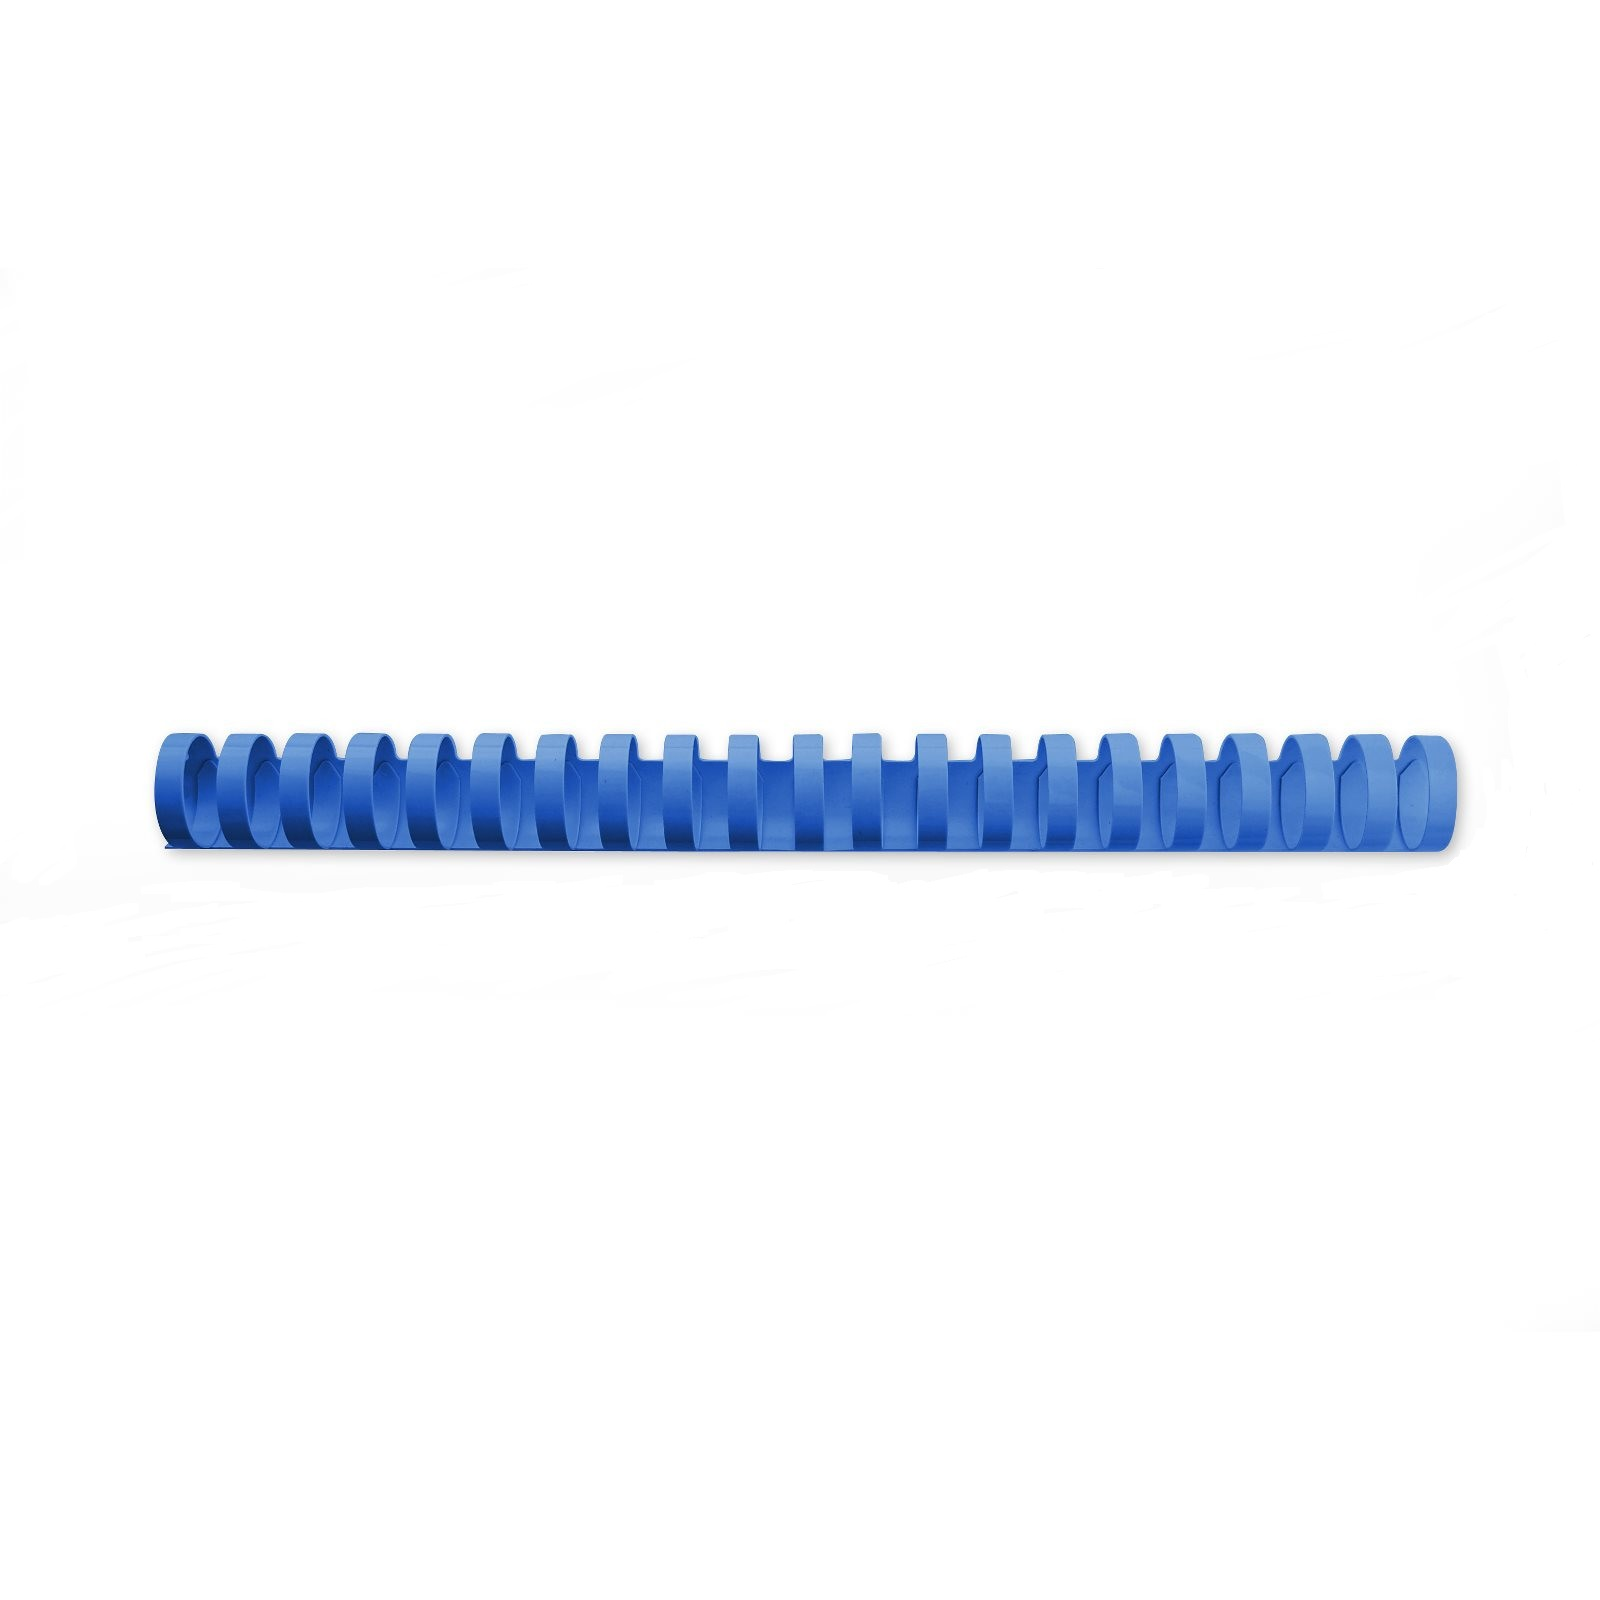 GBC Binding Combs 21 Ring A4 10mm Blue 4028235 (PK100)